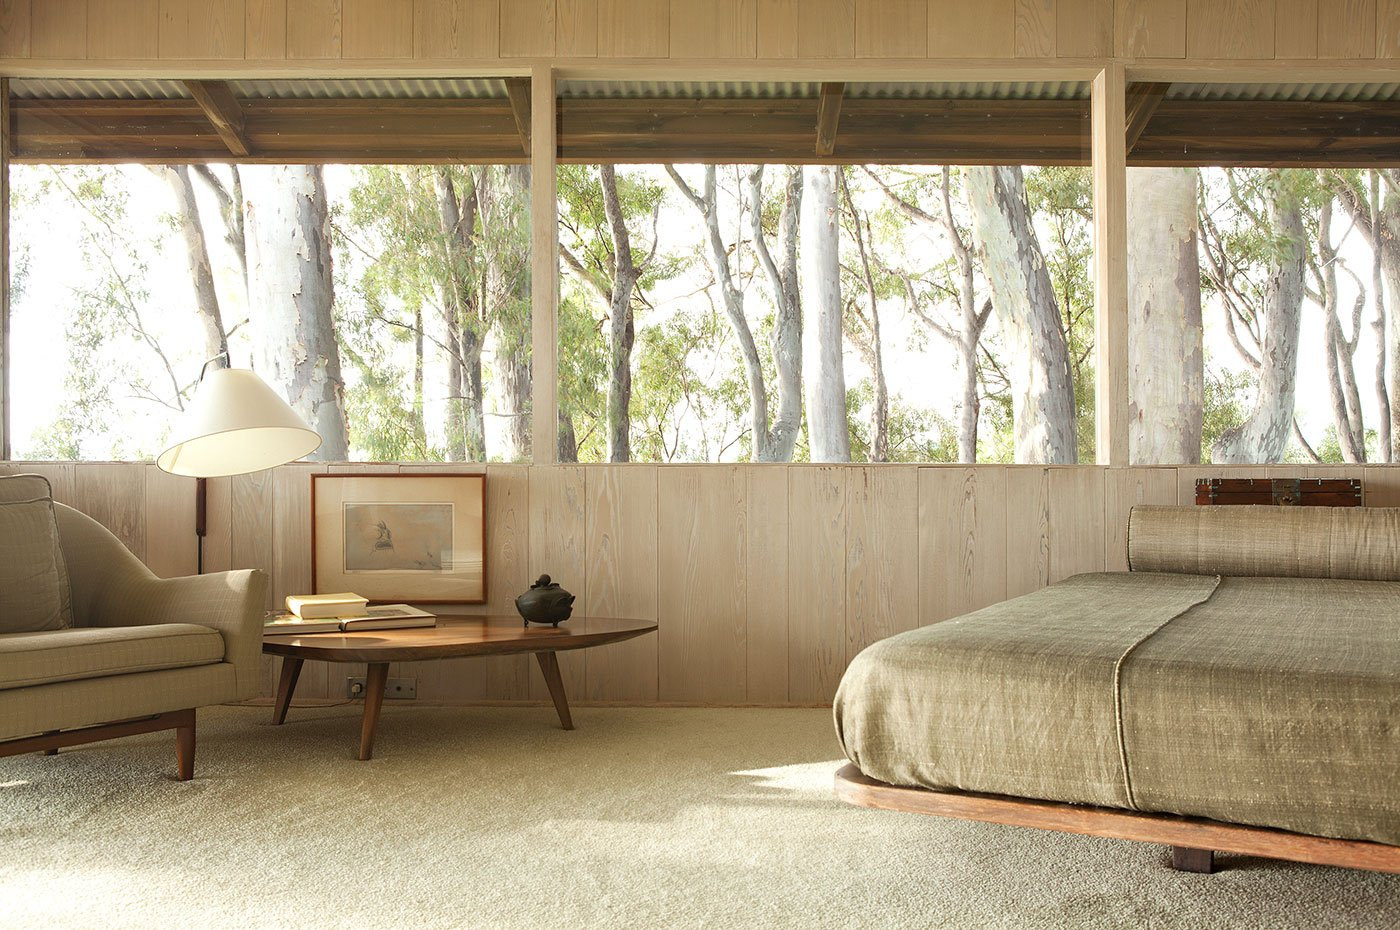 Liljestrand House - Honolulu, Hawaii - Vladimir Ossipoff - bedroom